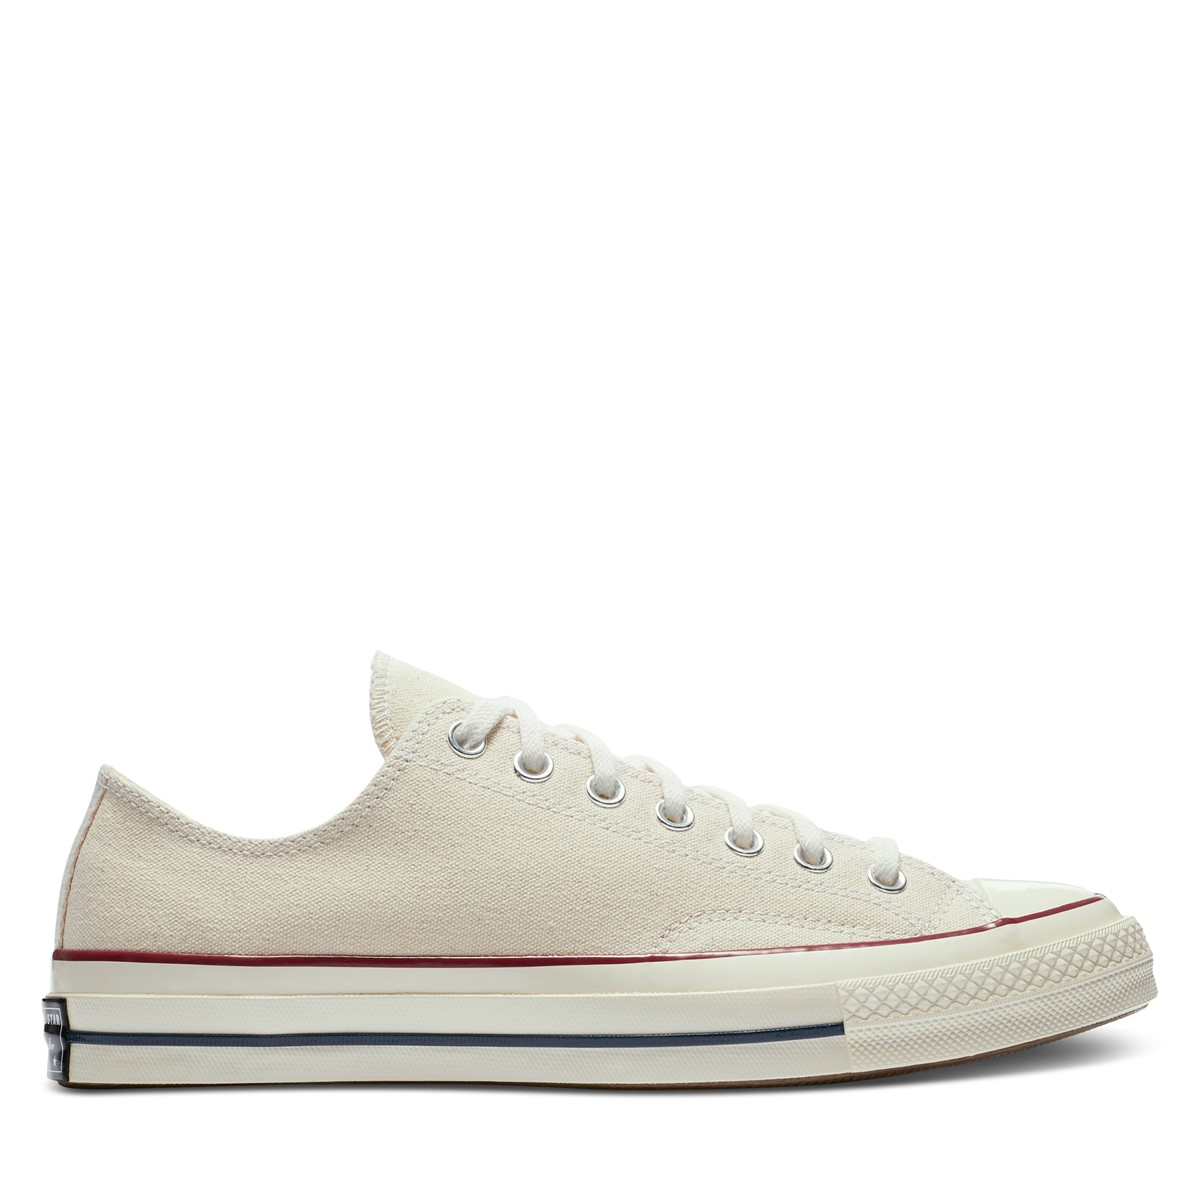 Chuck 70 Vintage Ox Sneakers in White